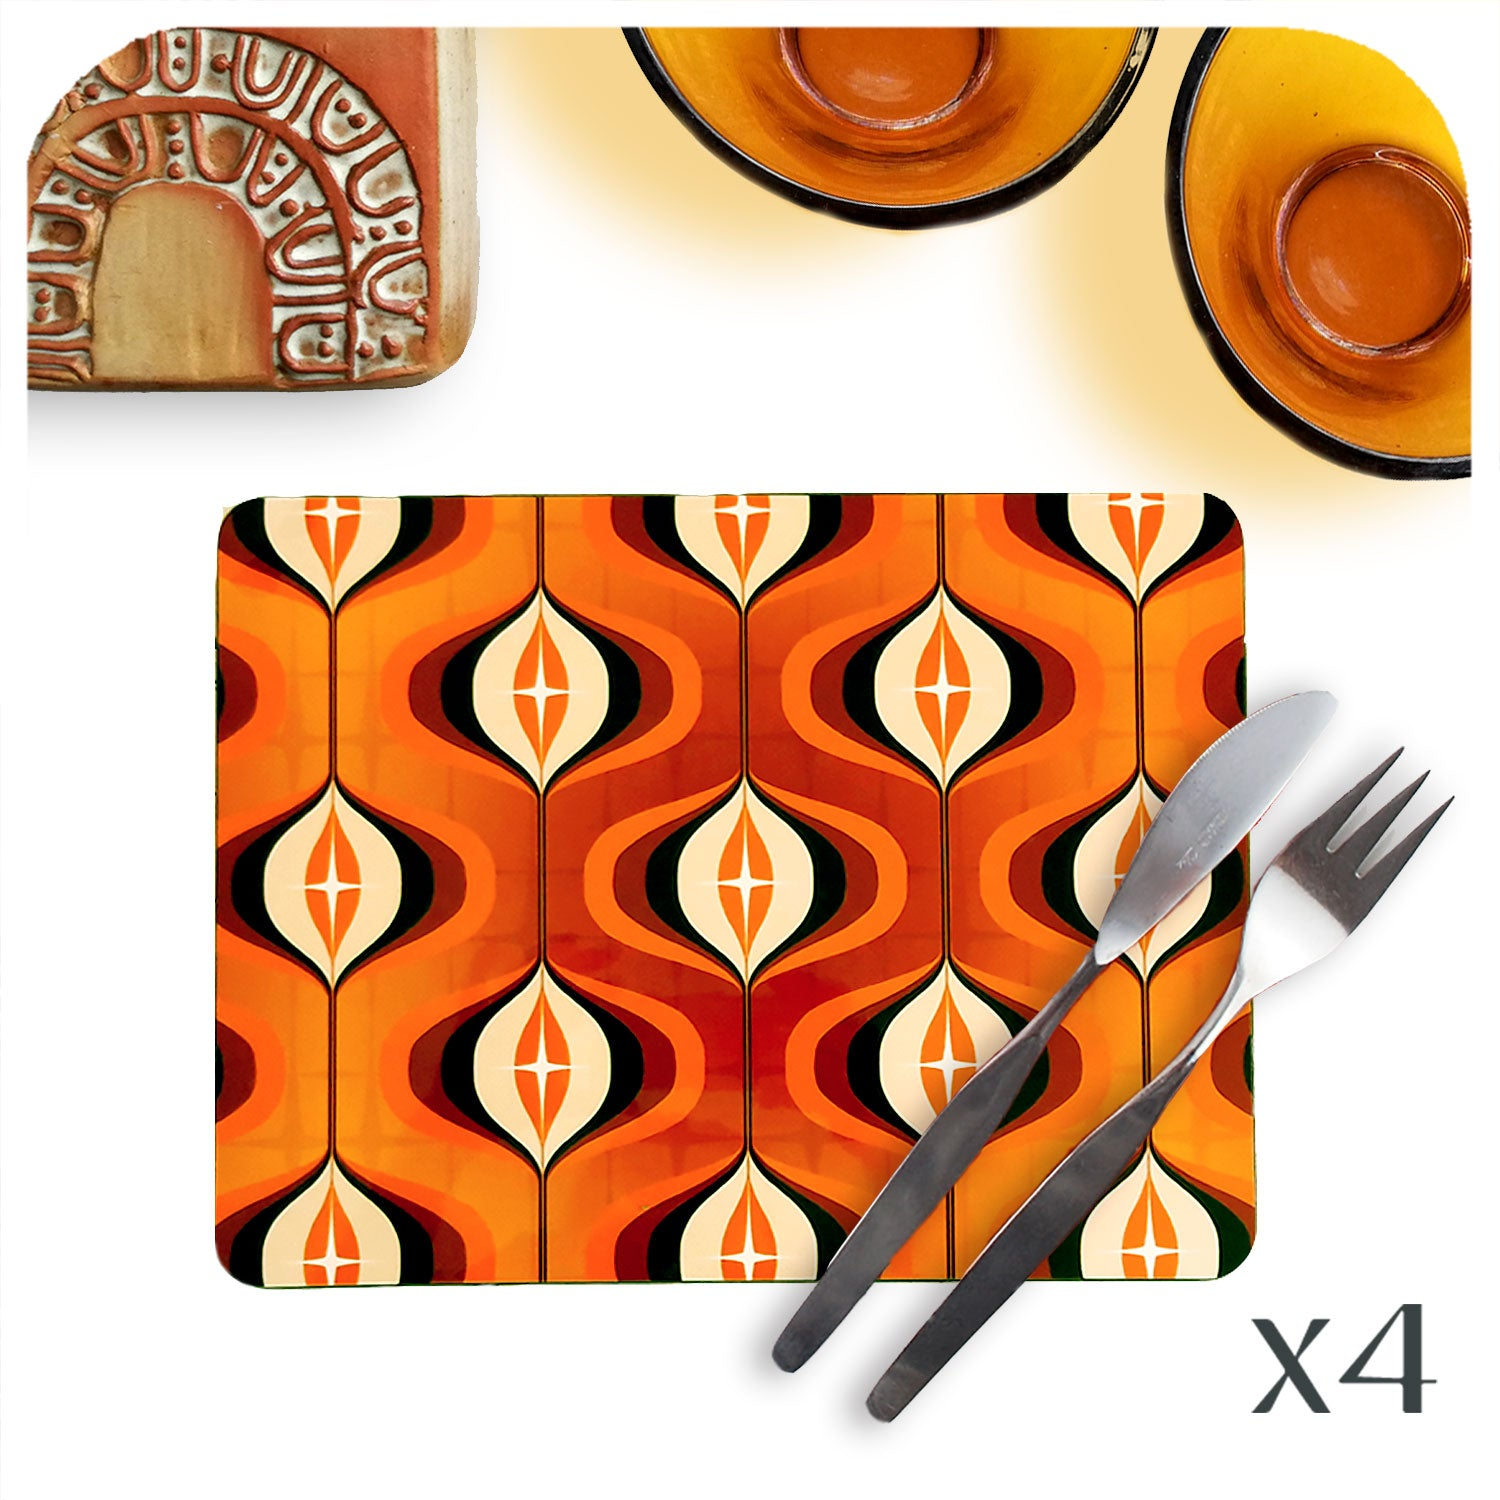 Retro 70s Op Art Placemat in Orange, set of 4 | The Inkabilly Emporium